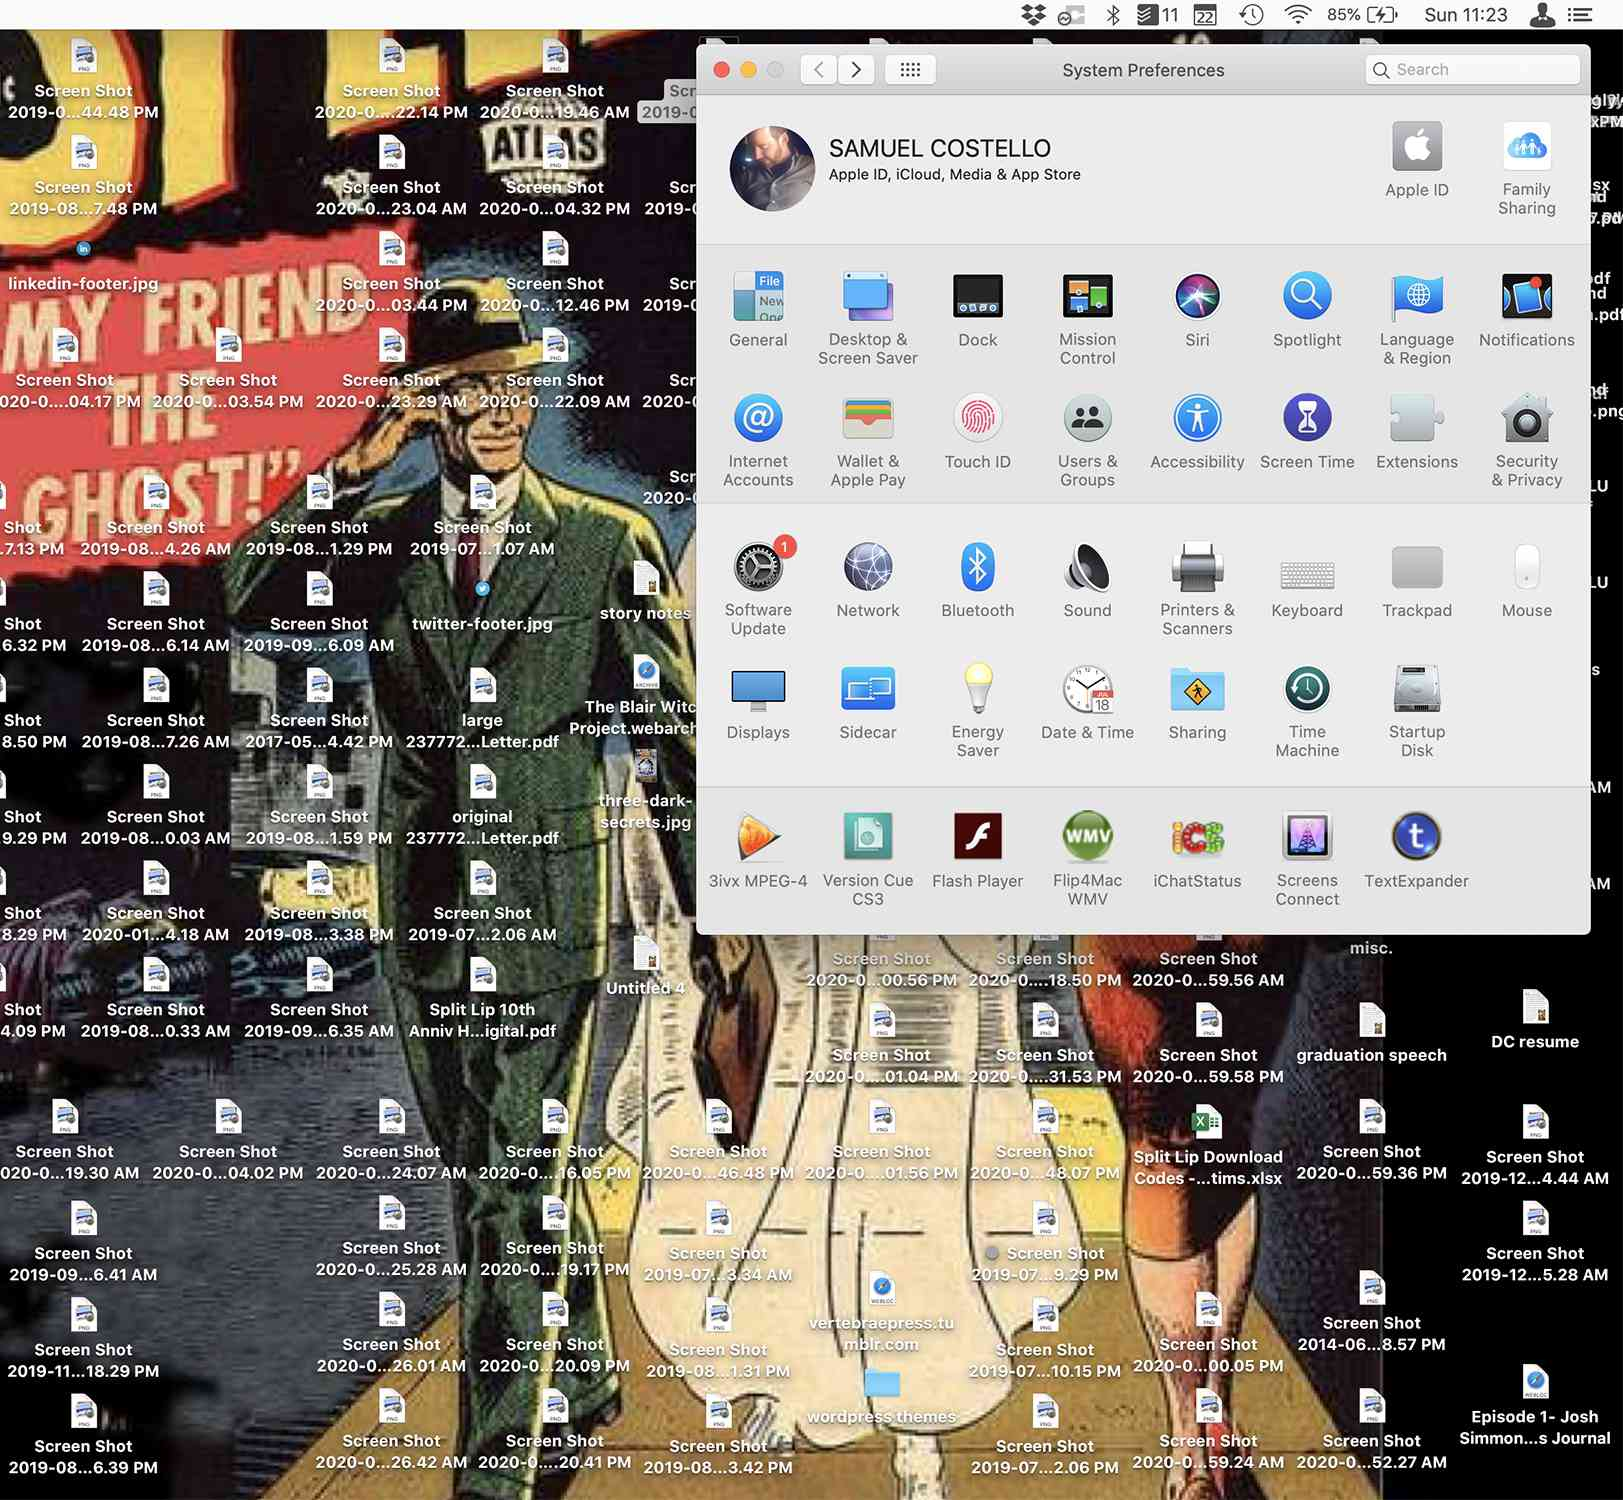 Screenshot of the Mac System Preferences window